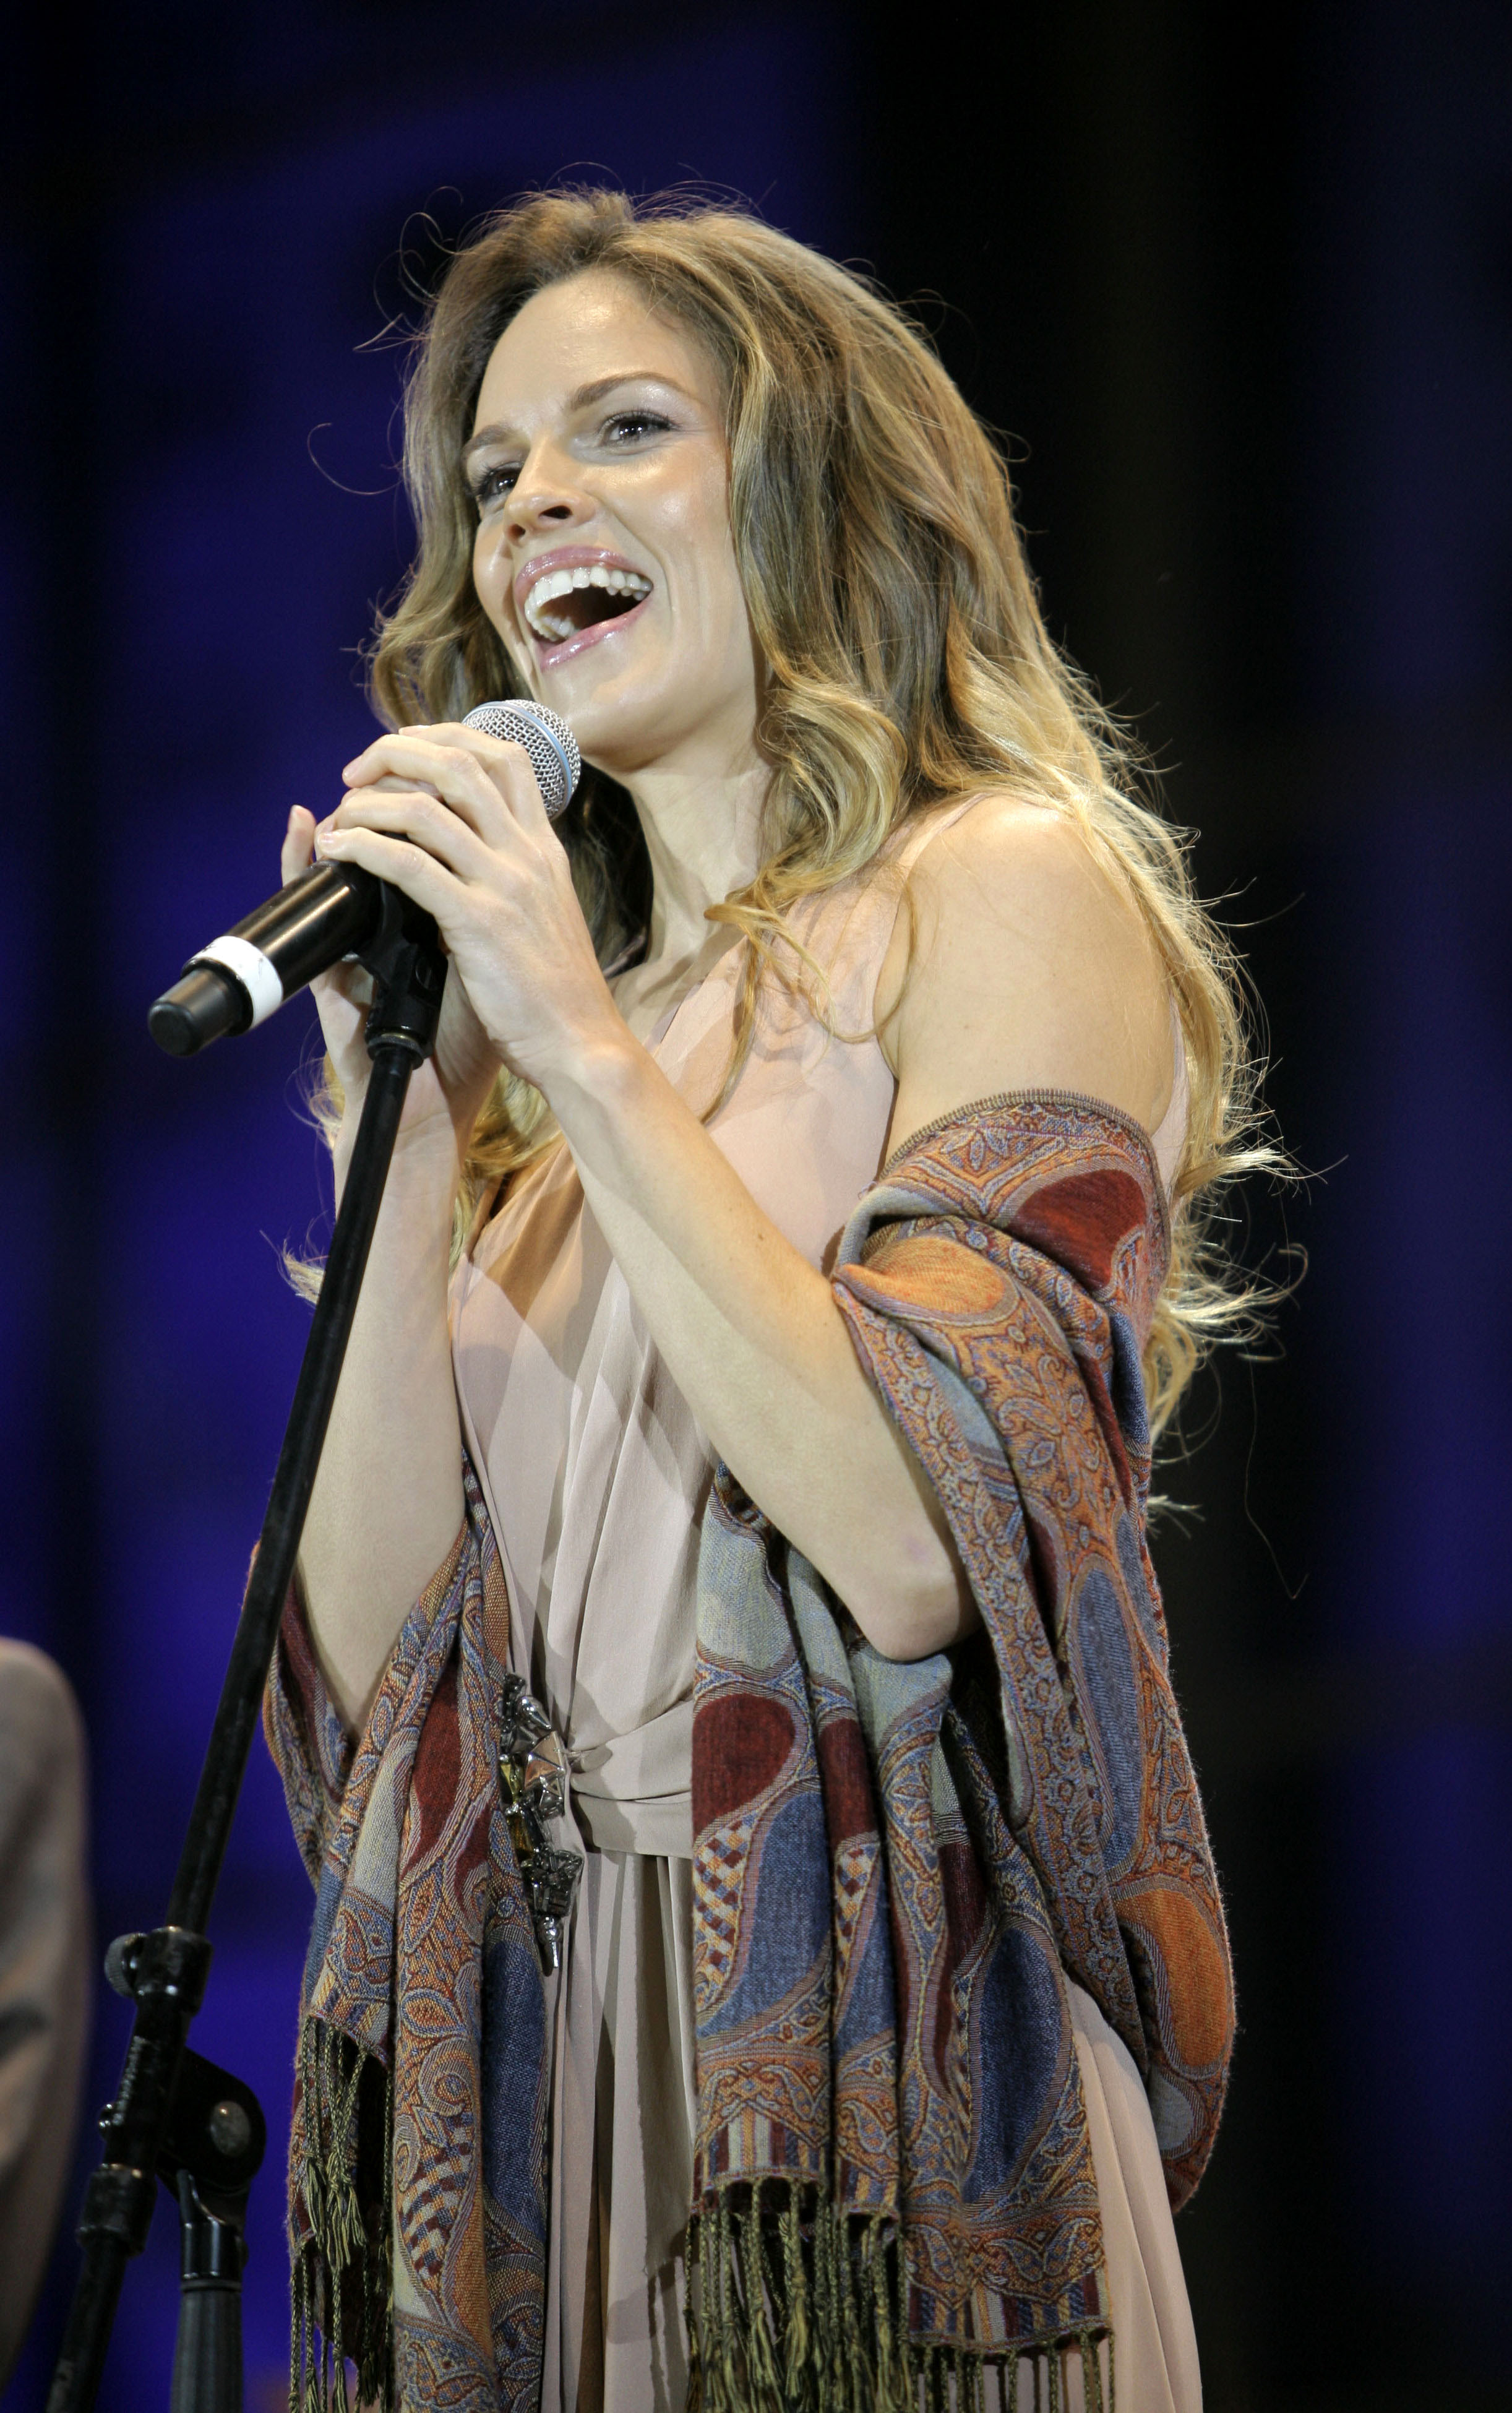 Hilary Swank attends a concert in the new  Grozny City  residential and commercial complex in Grozny, Chechen Republic, Russia on Oct. 5, 2011.